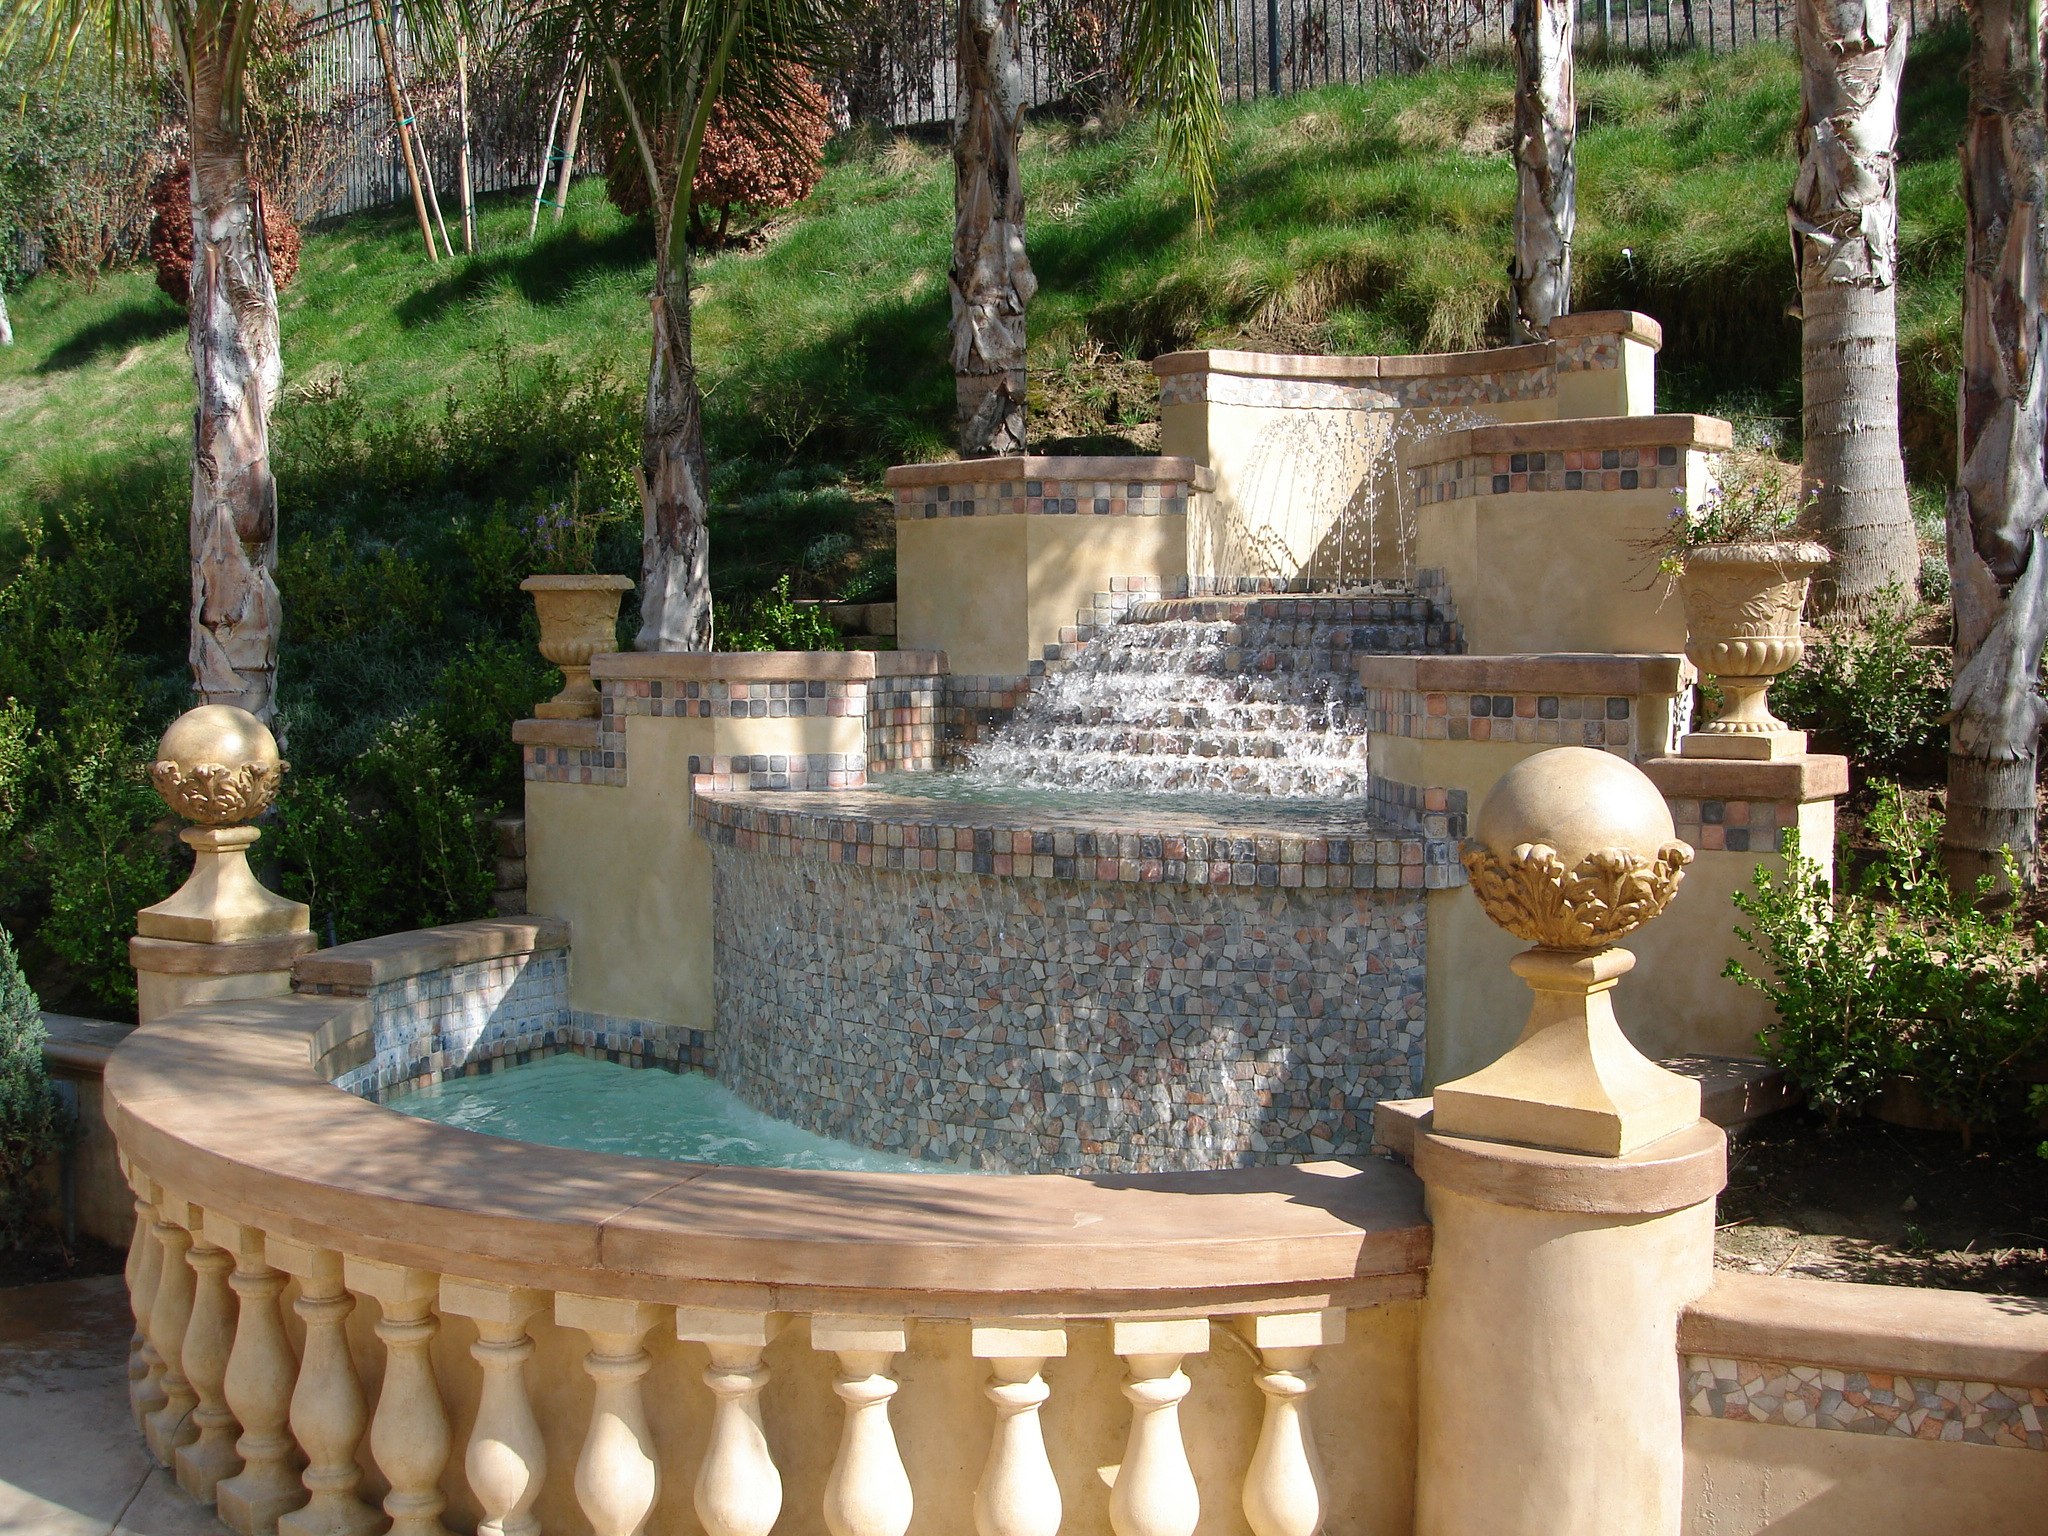 Antiqued_stone_fountain_detail.jpg